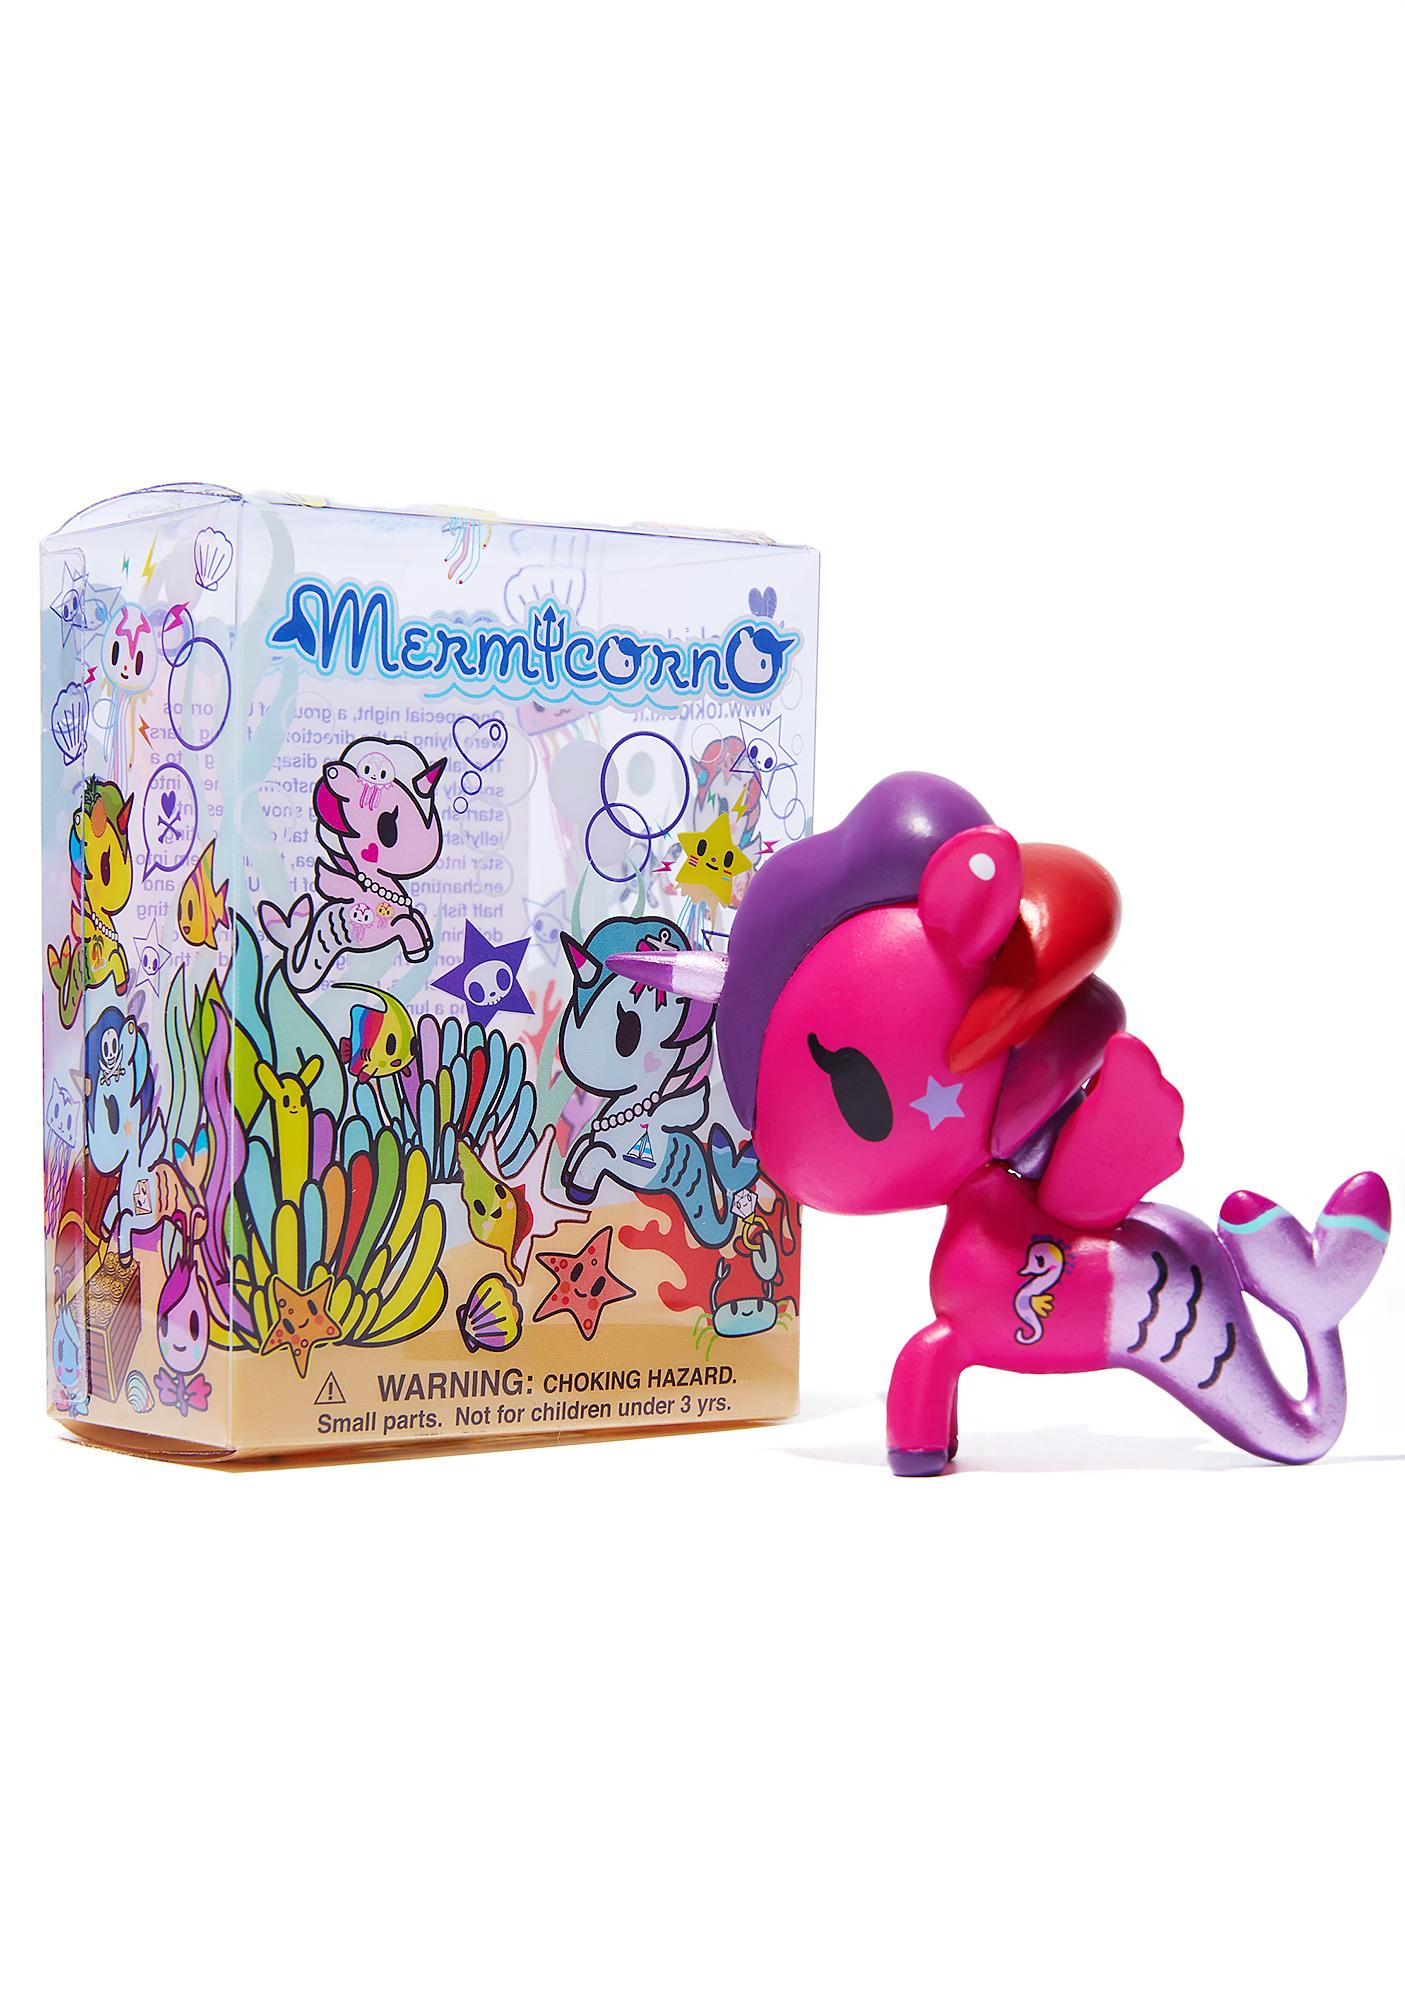 Tokidoki Mermicorno Series 1 Blind Box